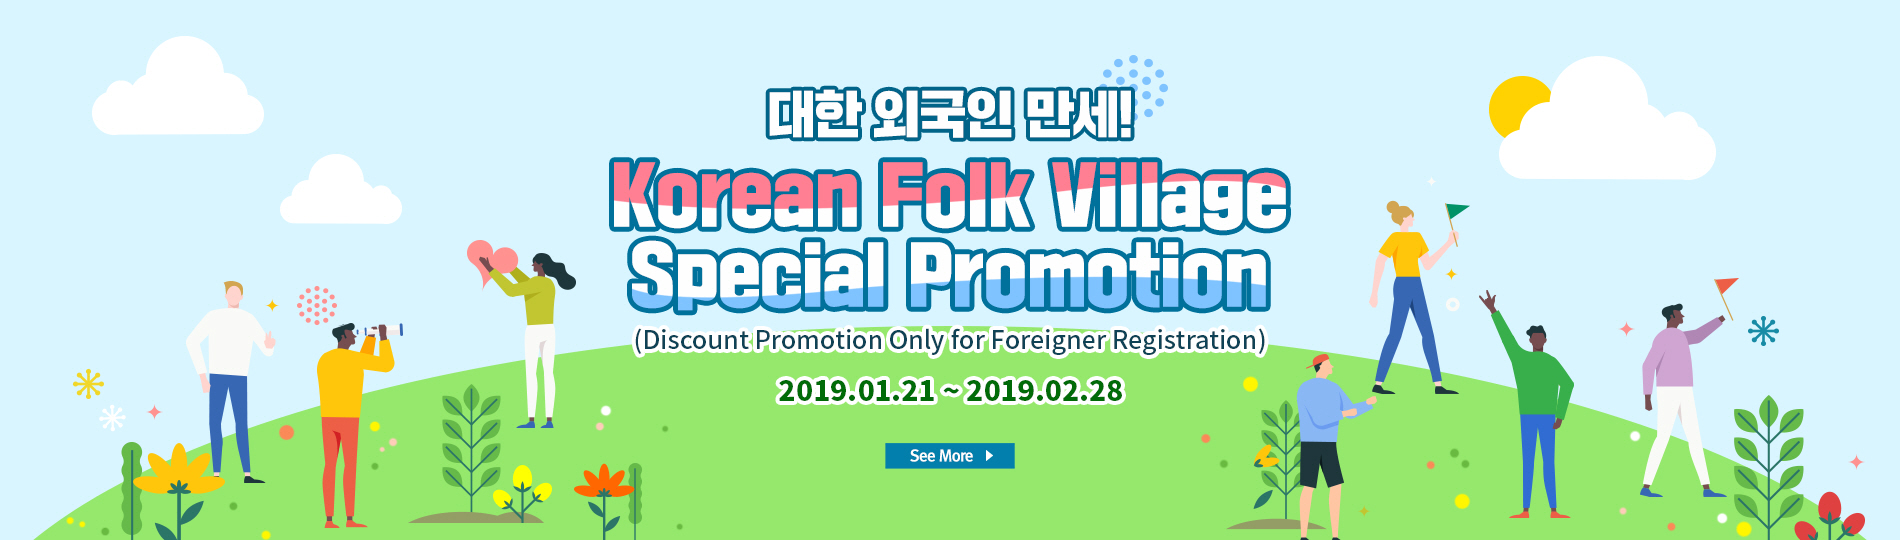 Korean Folk Village Special Promotion